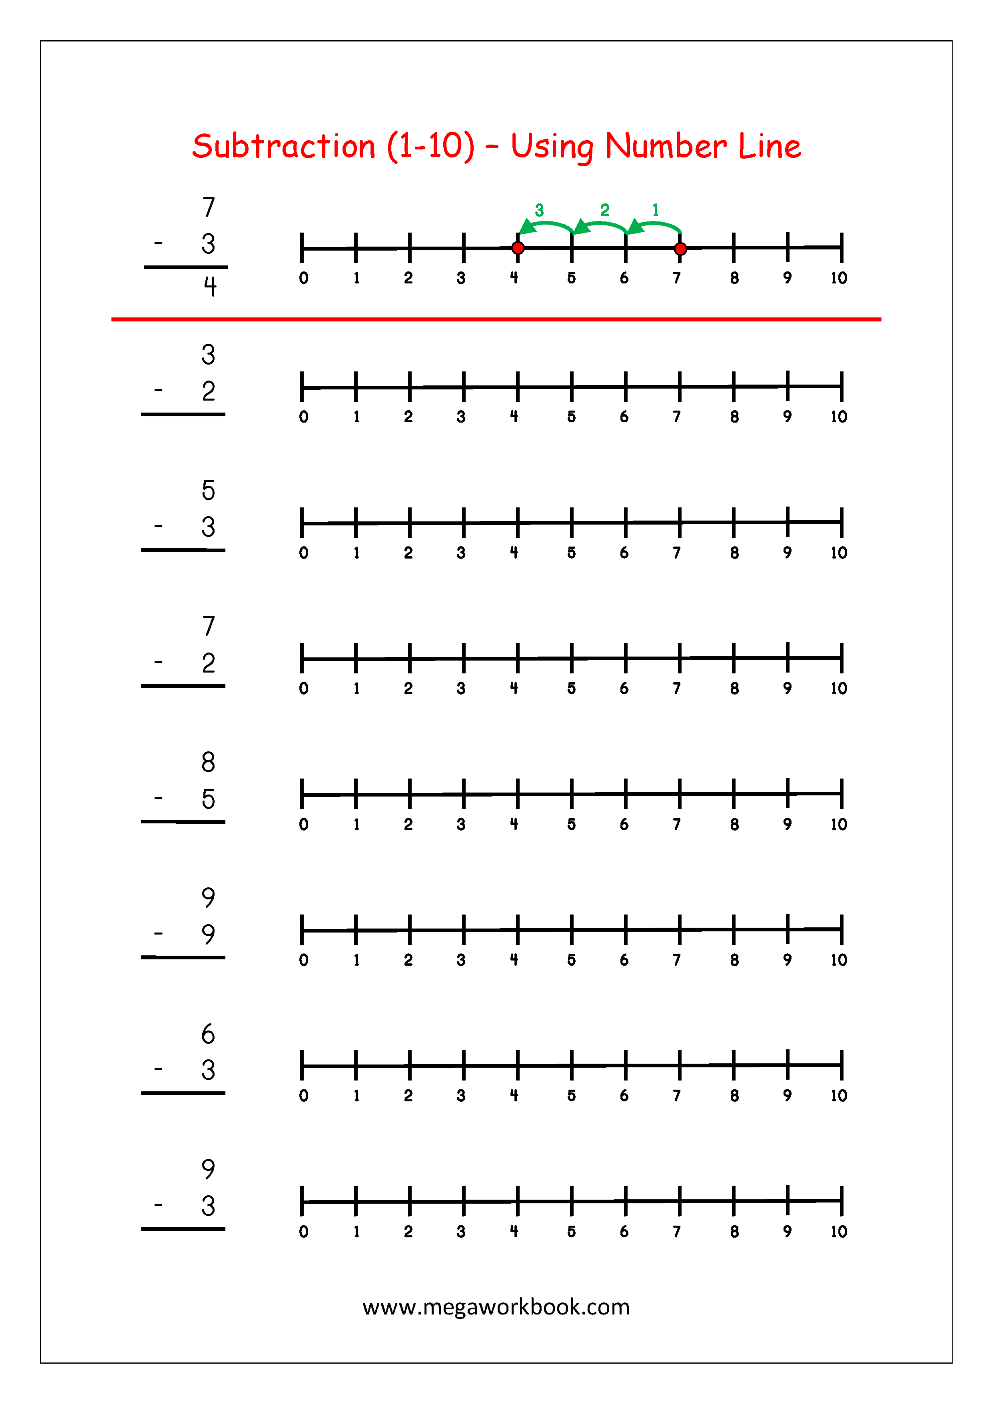 Workbooks math worksheets adding and subtracting : Subtraction Using Number Line (http://www.megaworkbook.com/maths ...